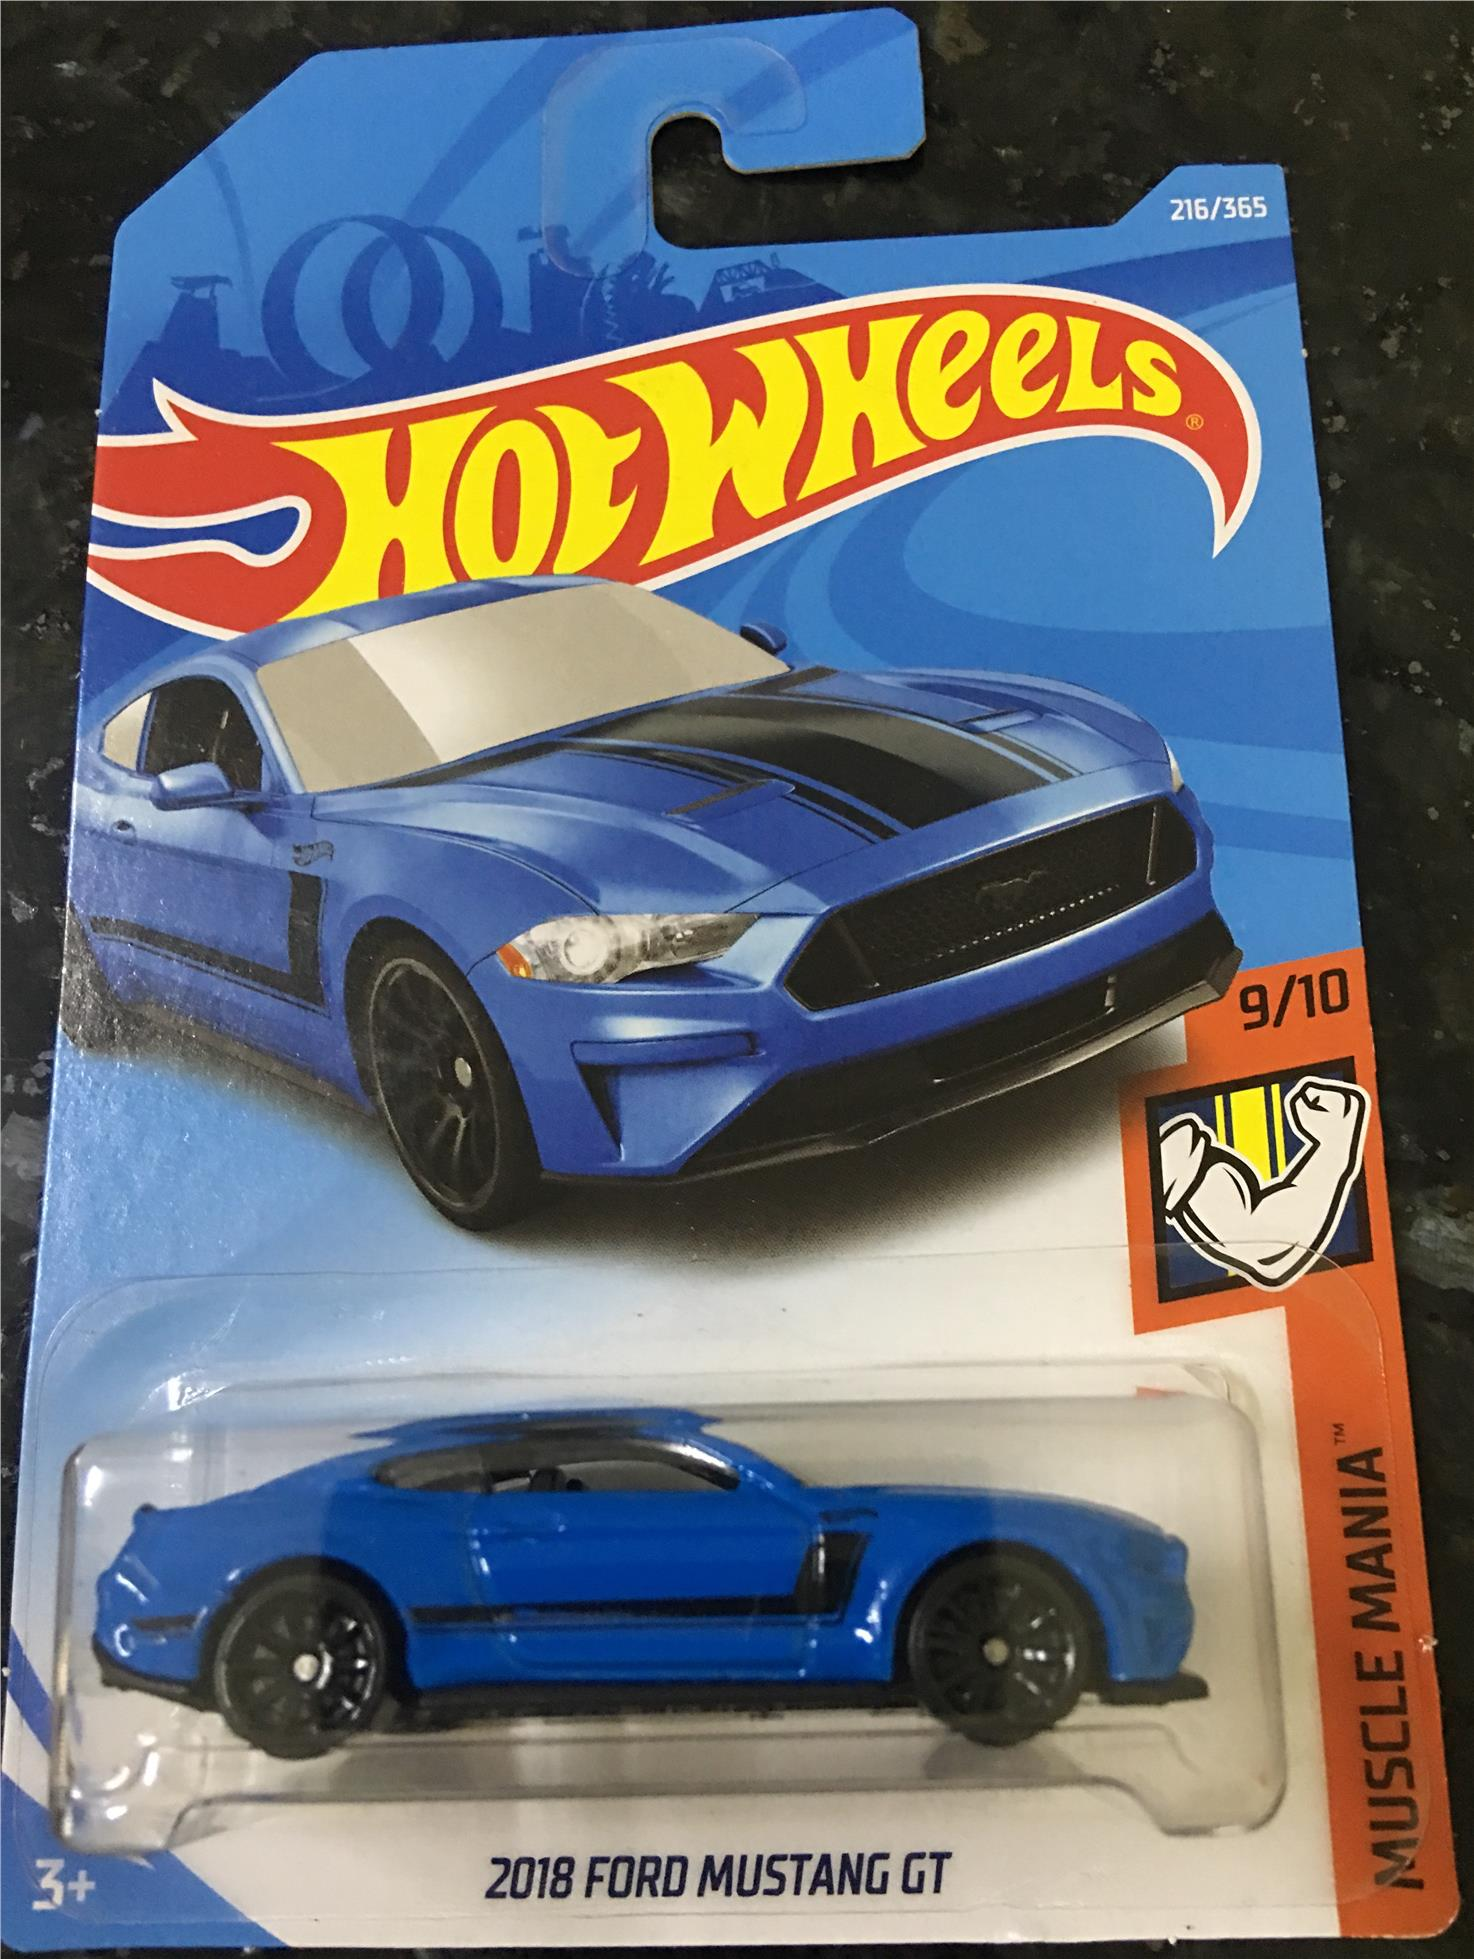 Ford Mustang Gt Hot Wheels